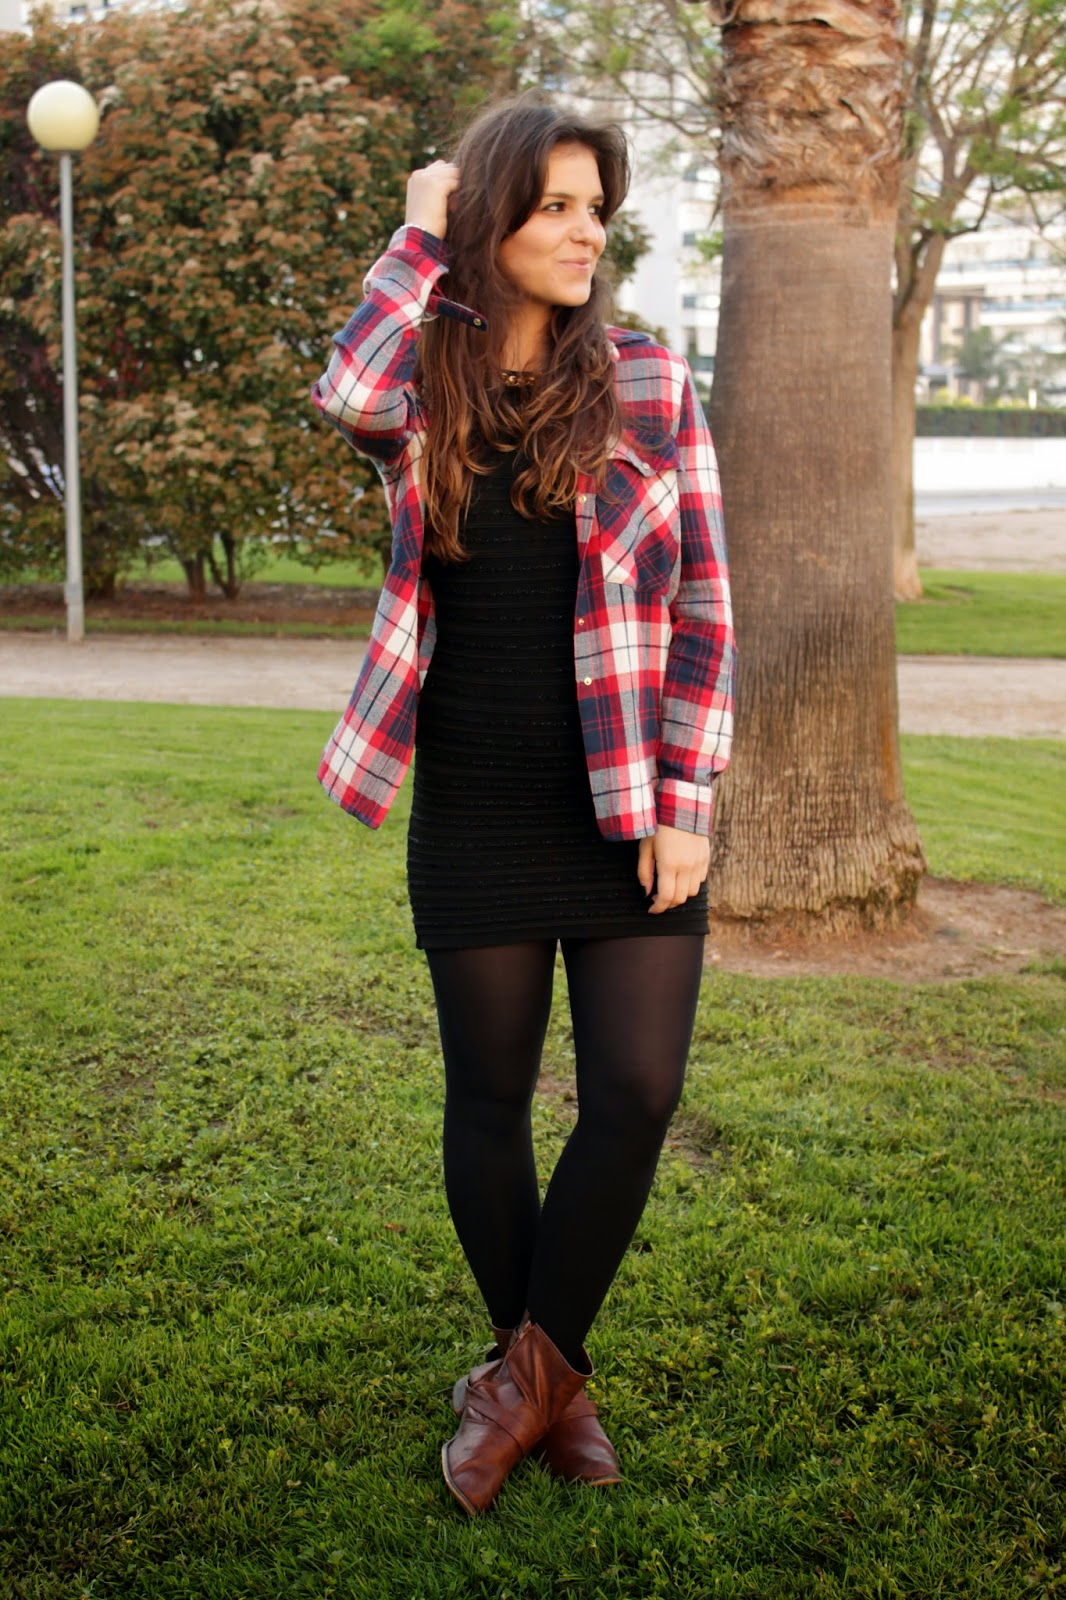 http://emedemeers.blogspot.com.es/2014/05/dress-tartan-shirt.html